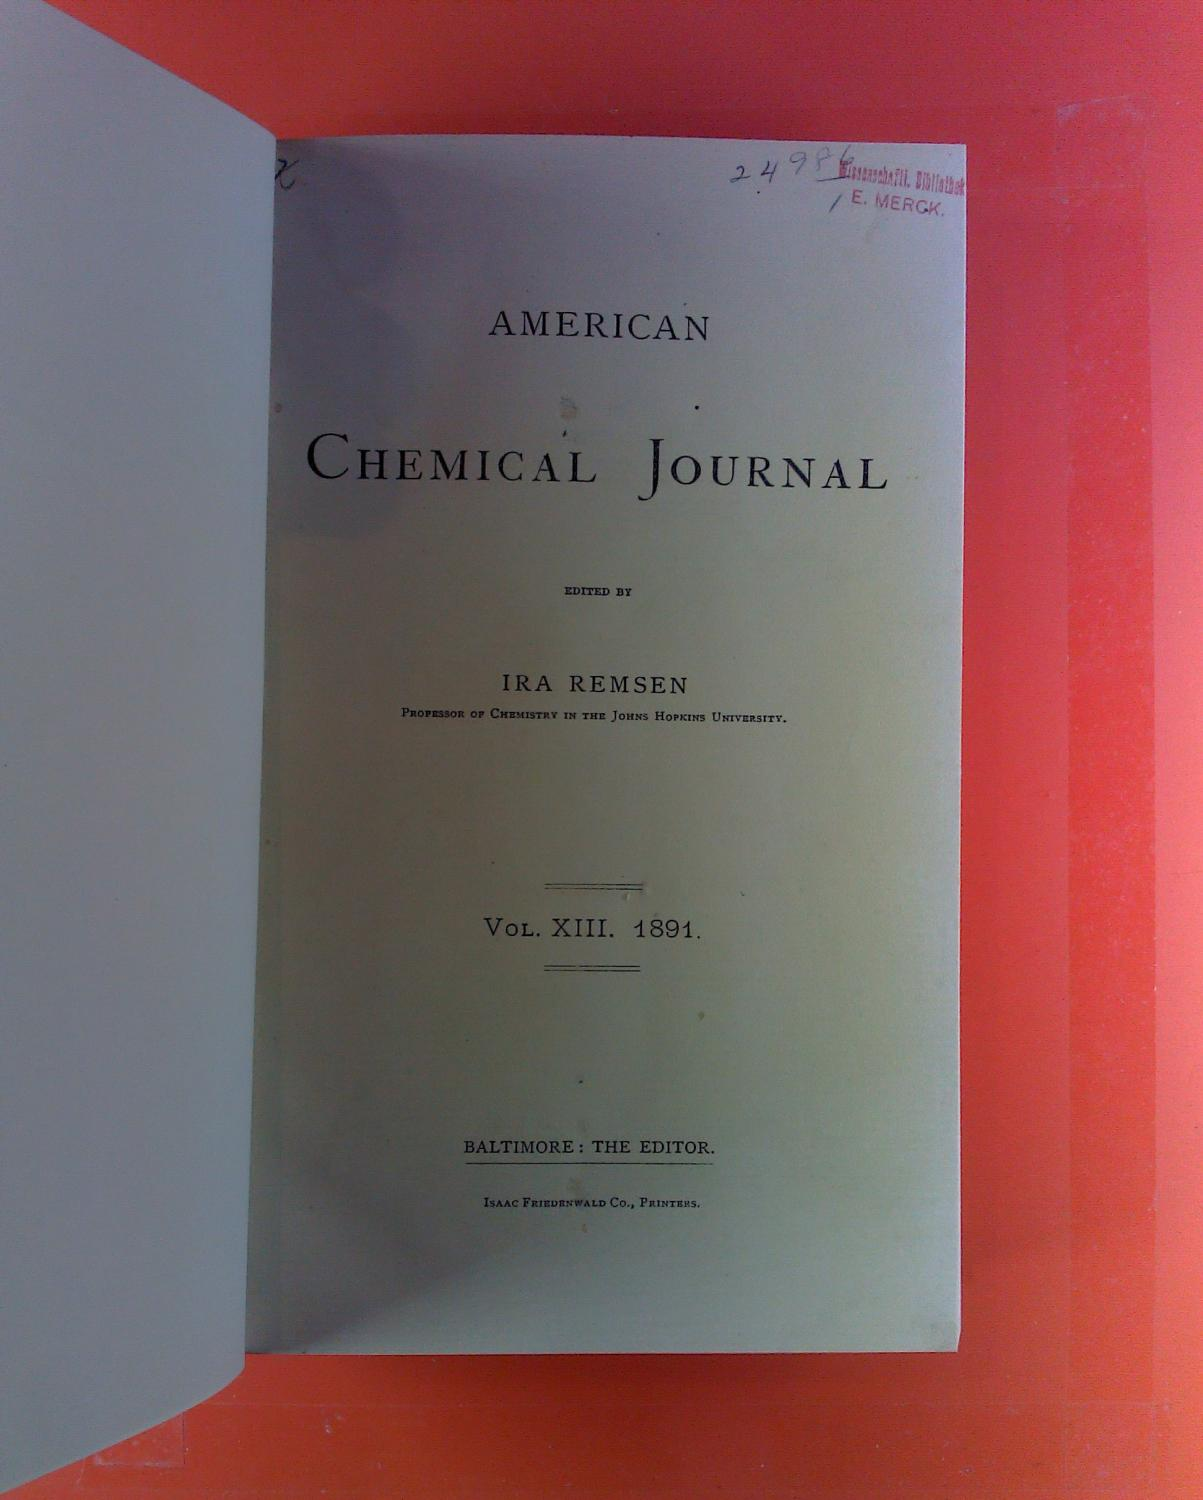 American Chemical Journal. Vol. XIII, 1891. Charles: Ira Remsen